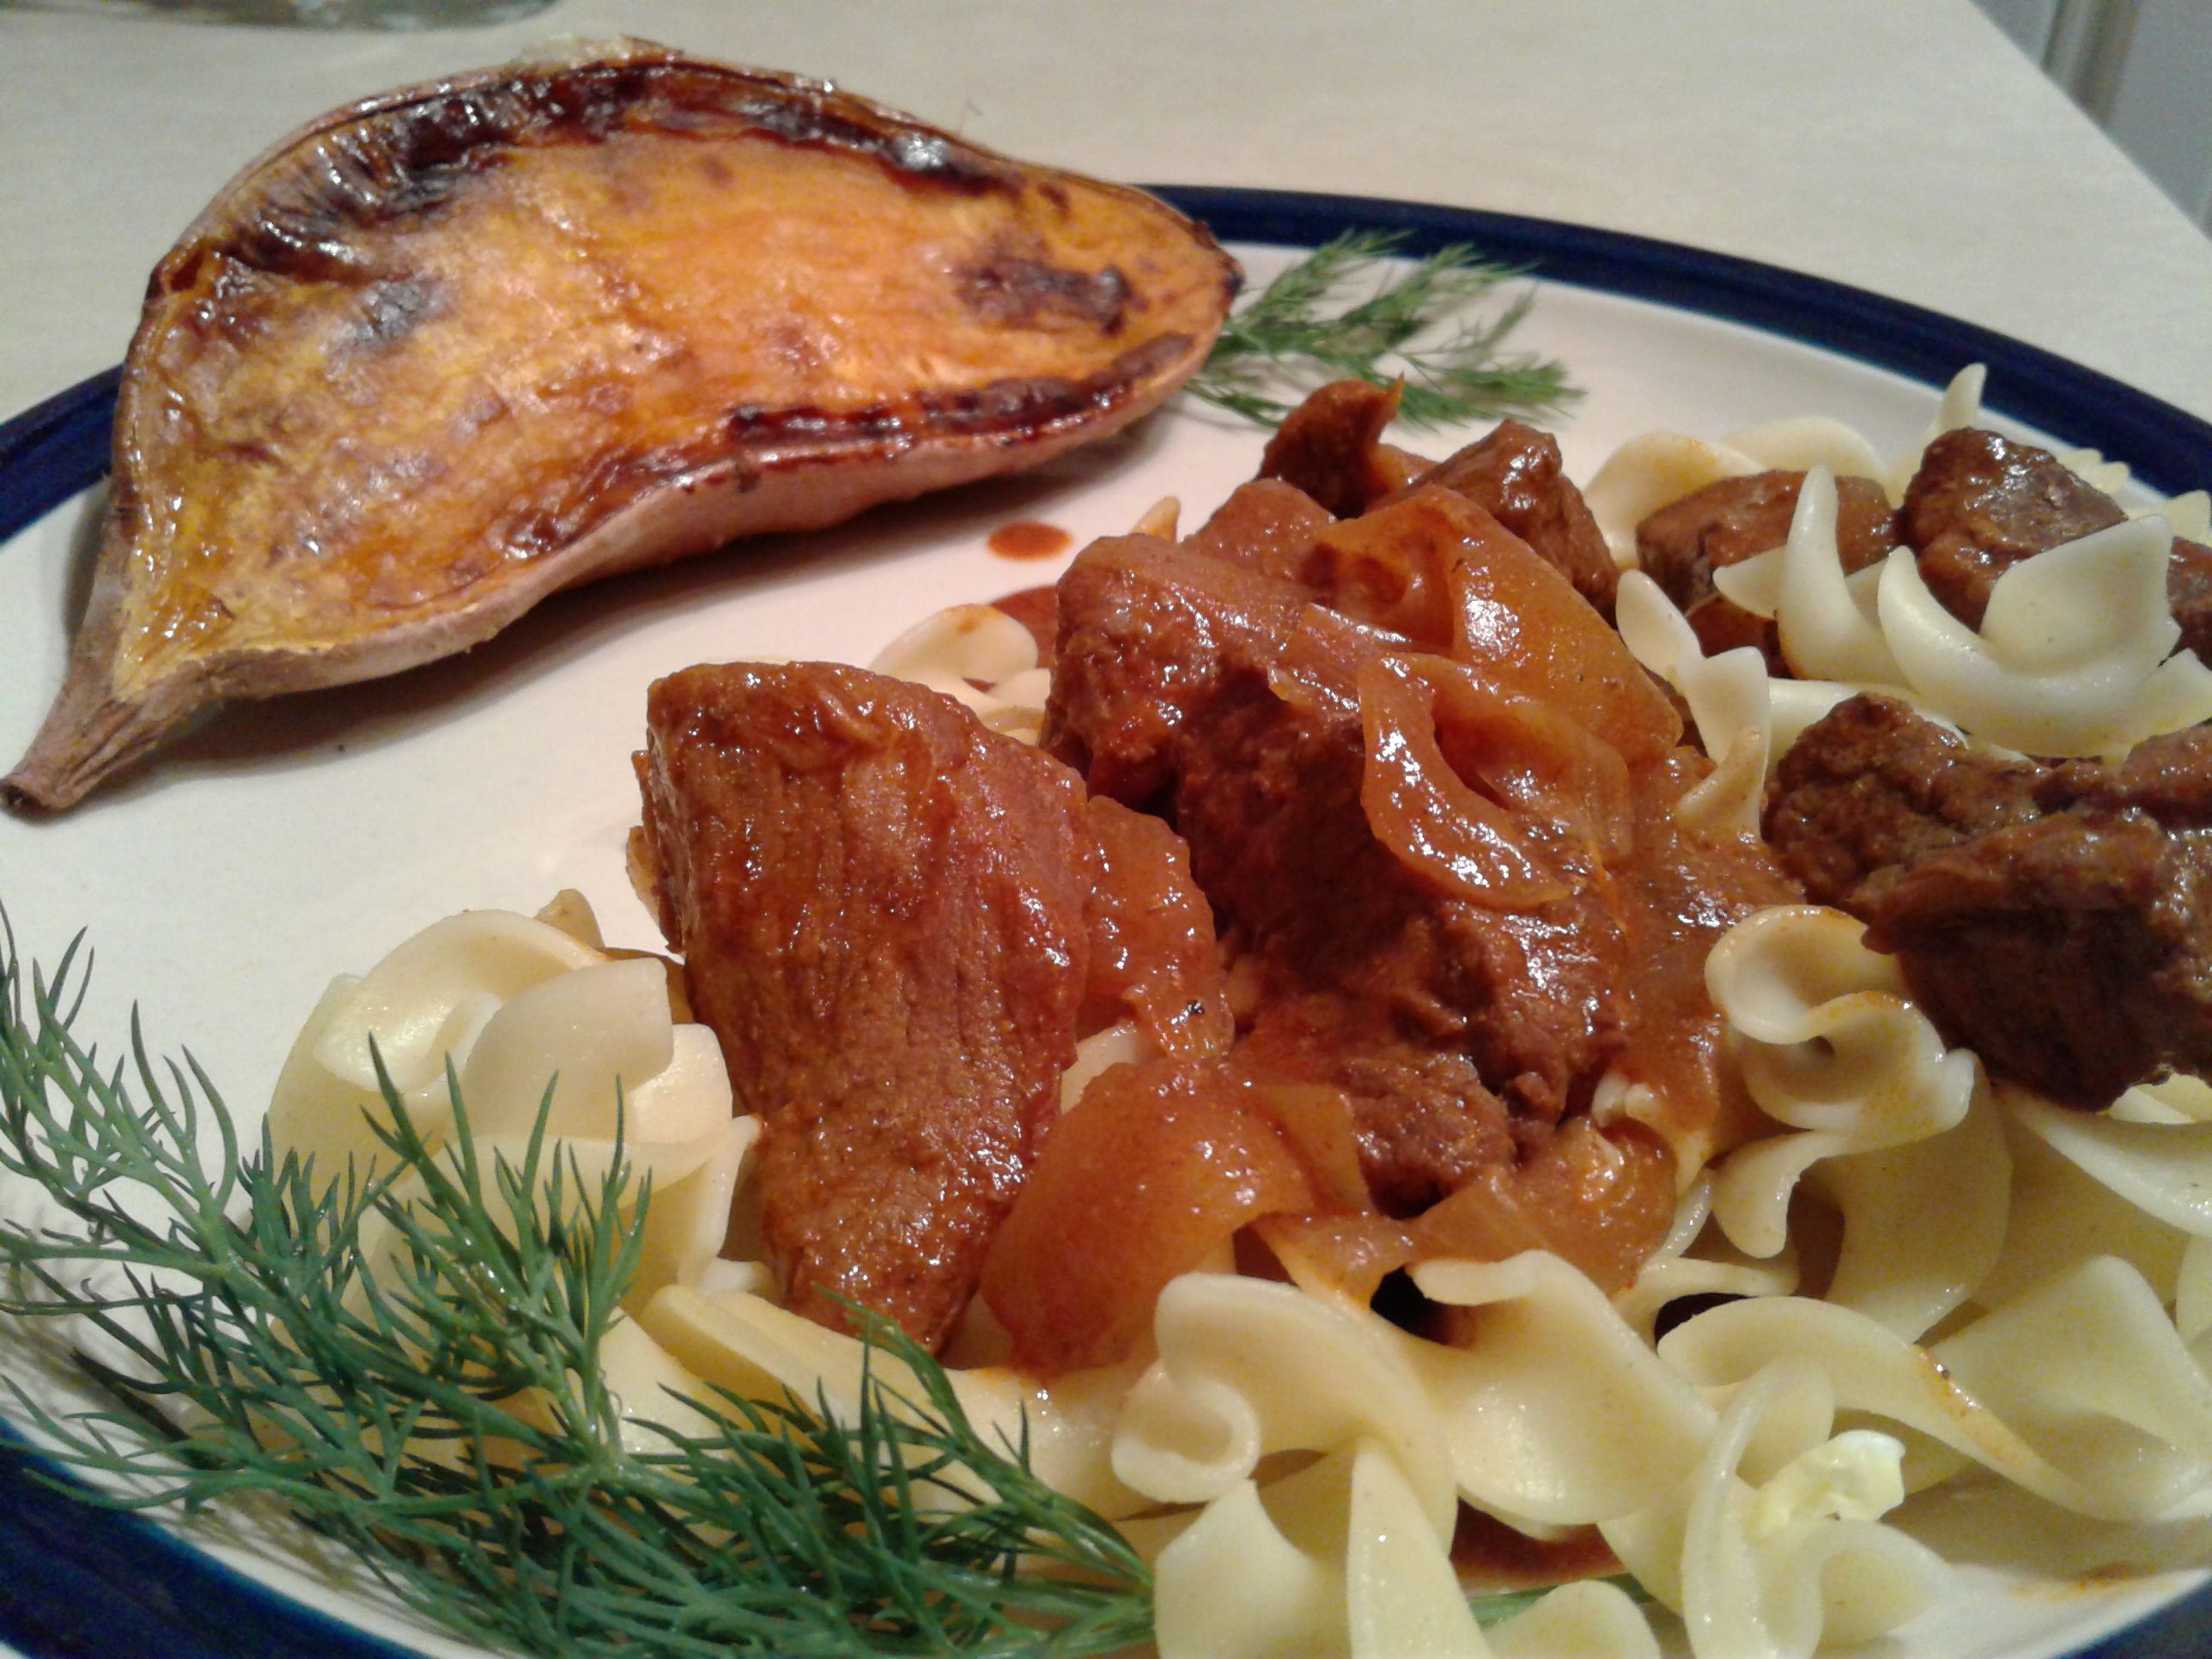 Hungarian beef, egg noodles, roasted sweet potato